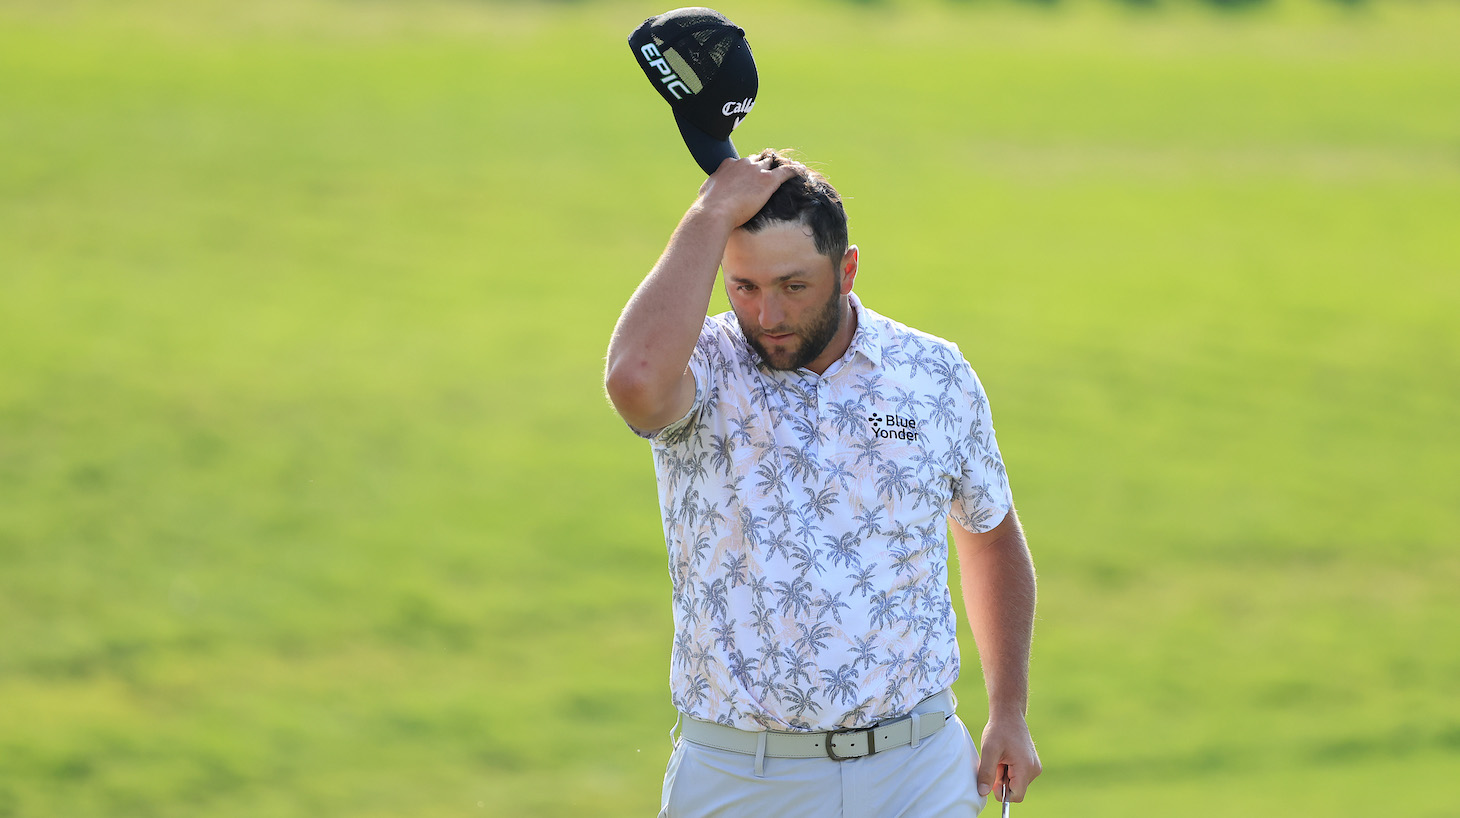 Jon Rahm of Spain reacts as he walks off the 18th green after completing his third round of The Memorial Tournament at Muirfield Village Golf Club on June 05, 2021 in Dublin, Ohio.